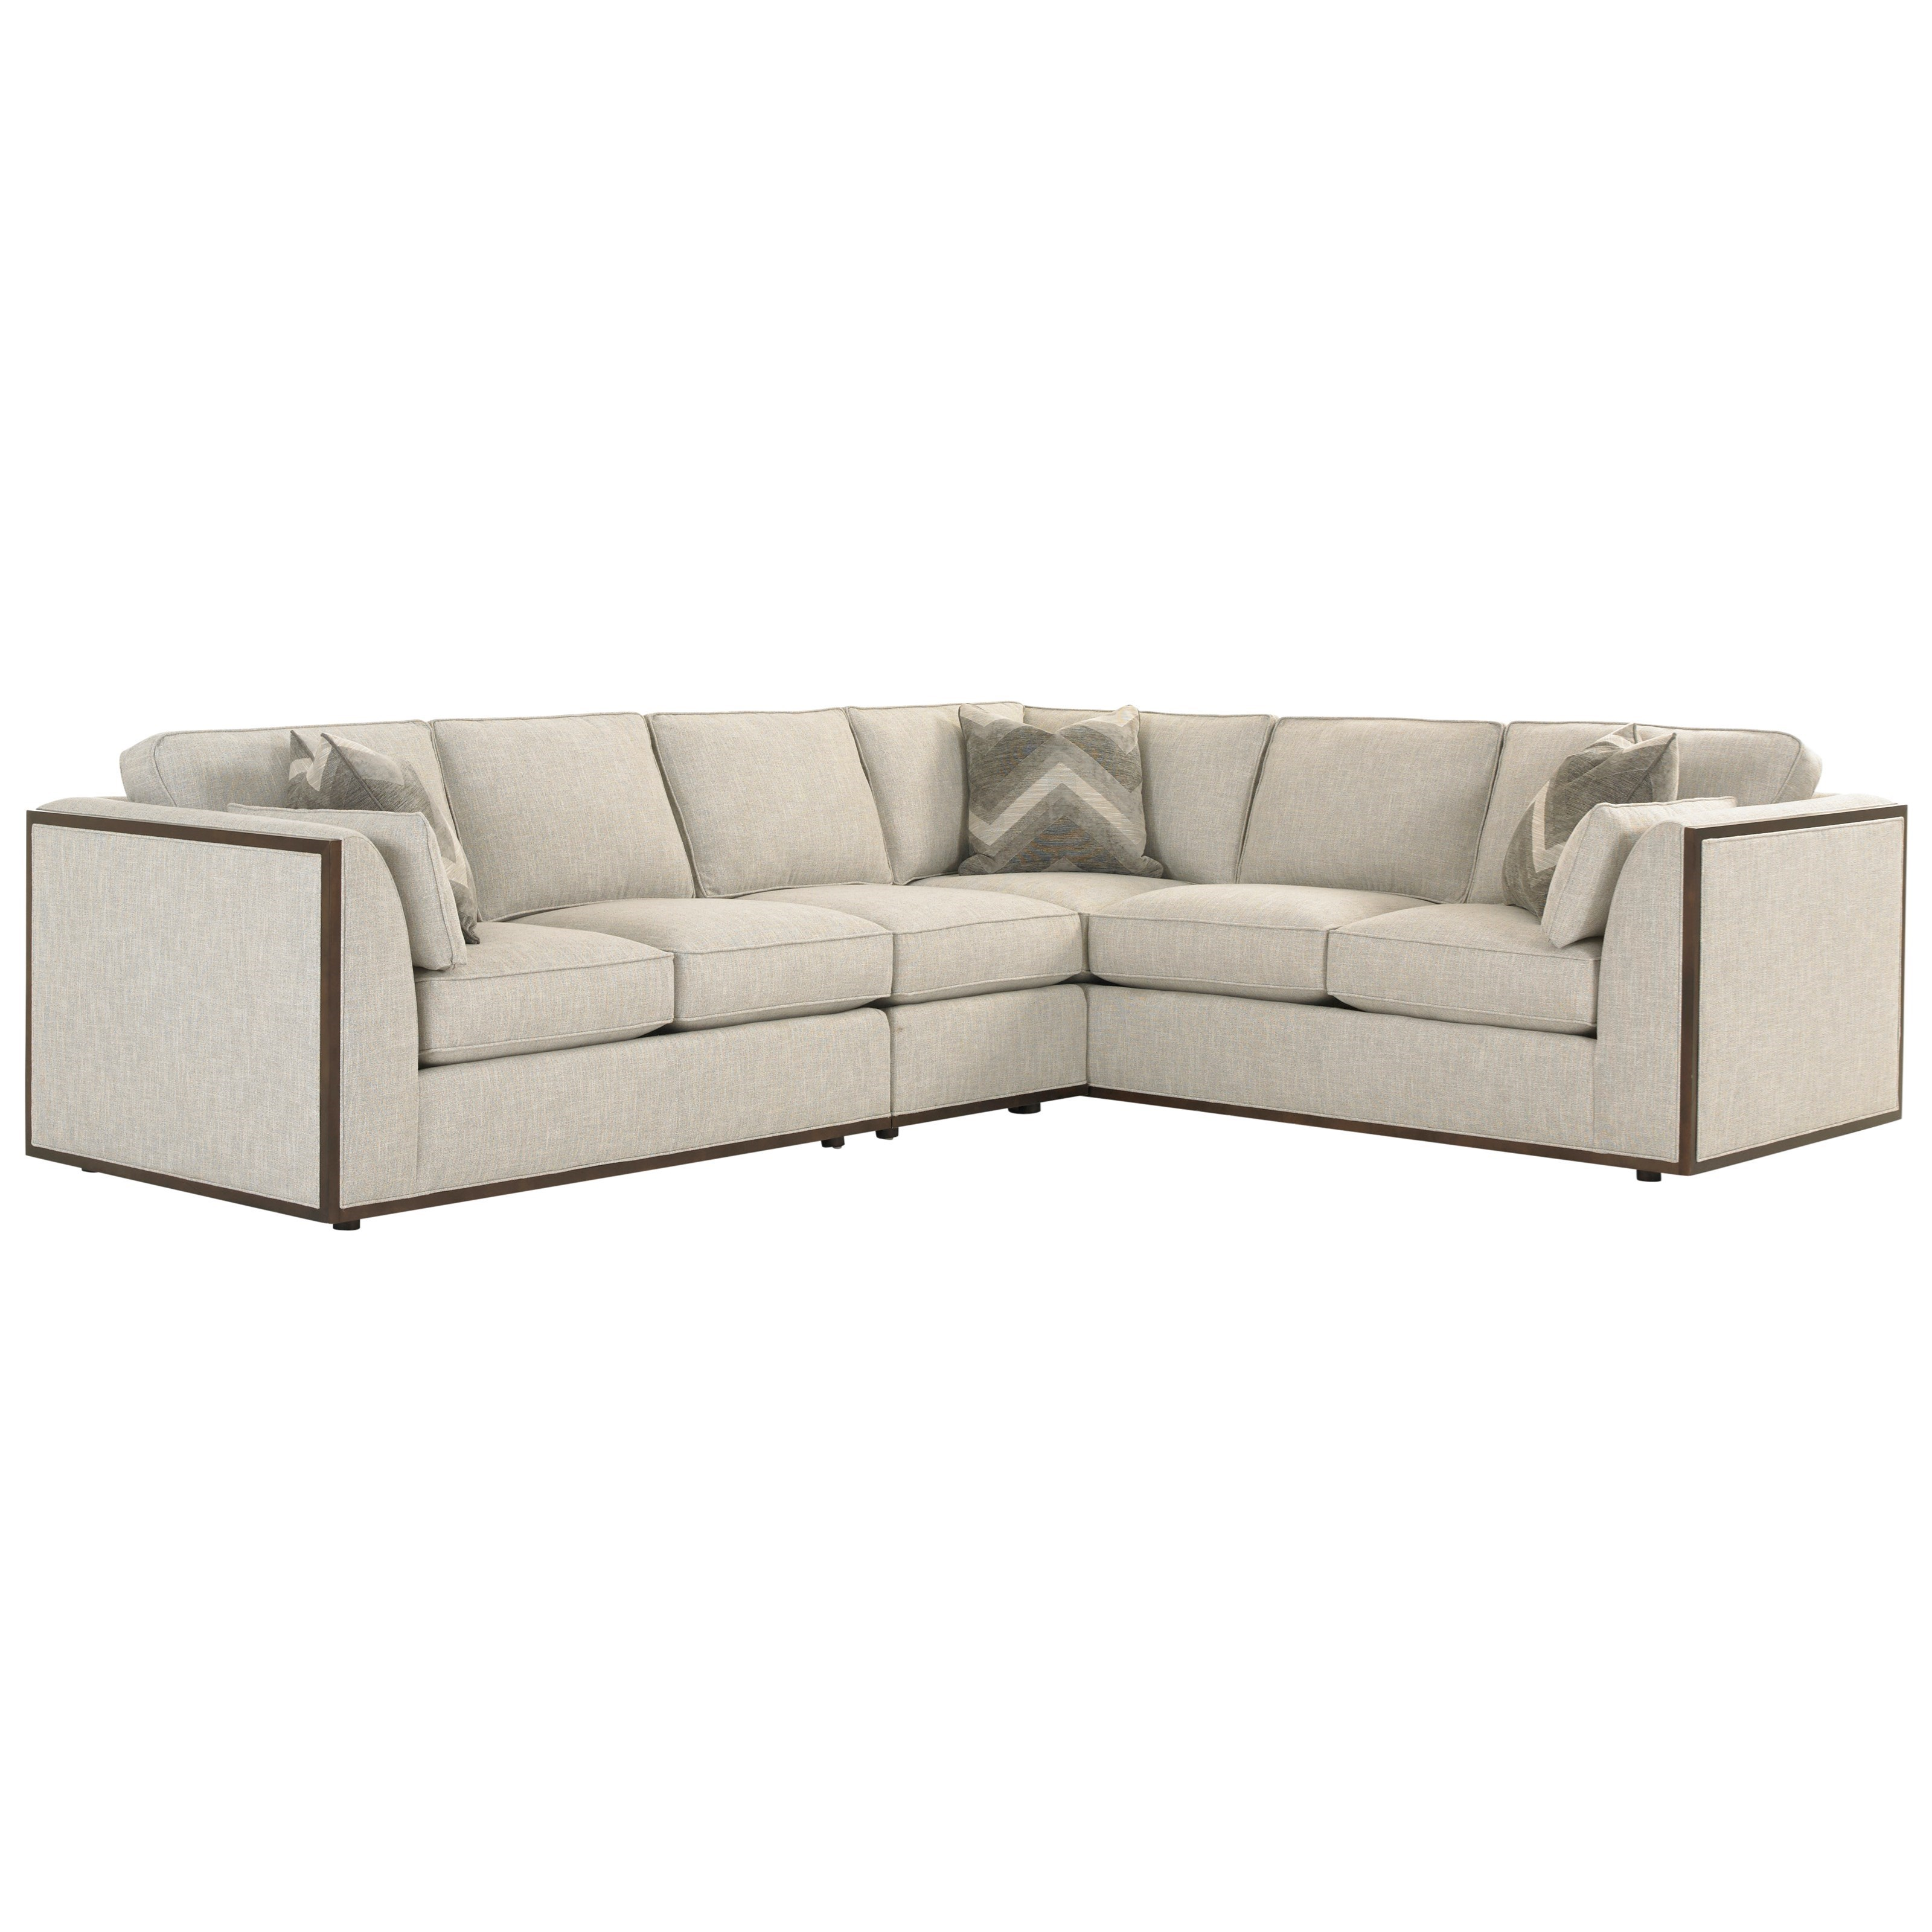 Westcliffe 3 Pc Sectional Sofa